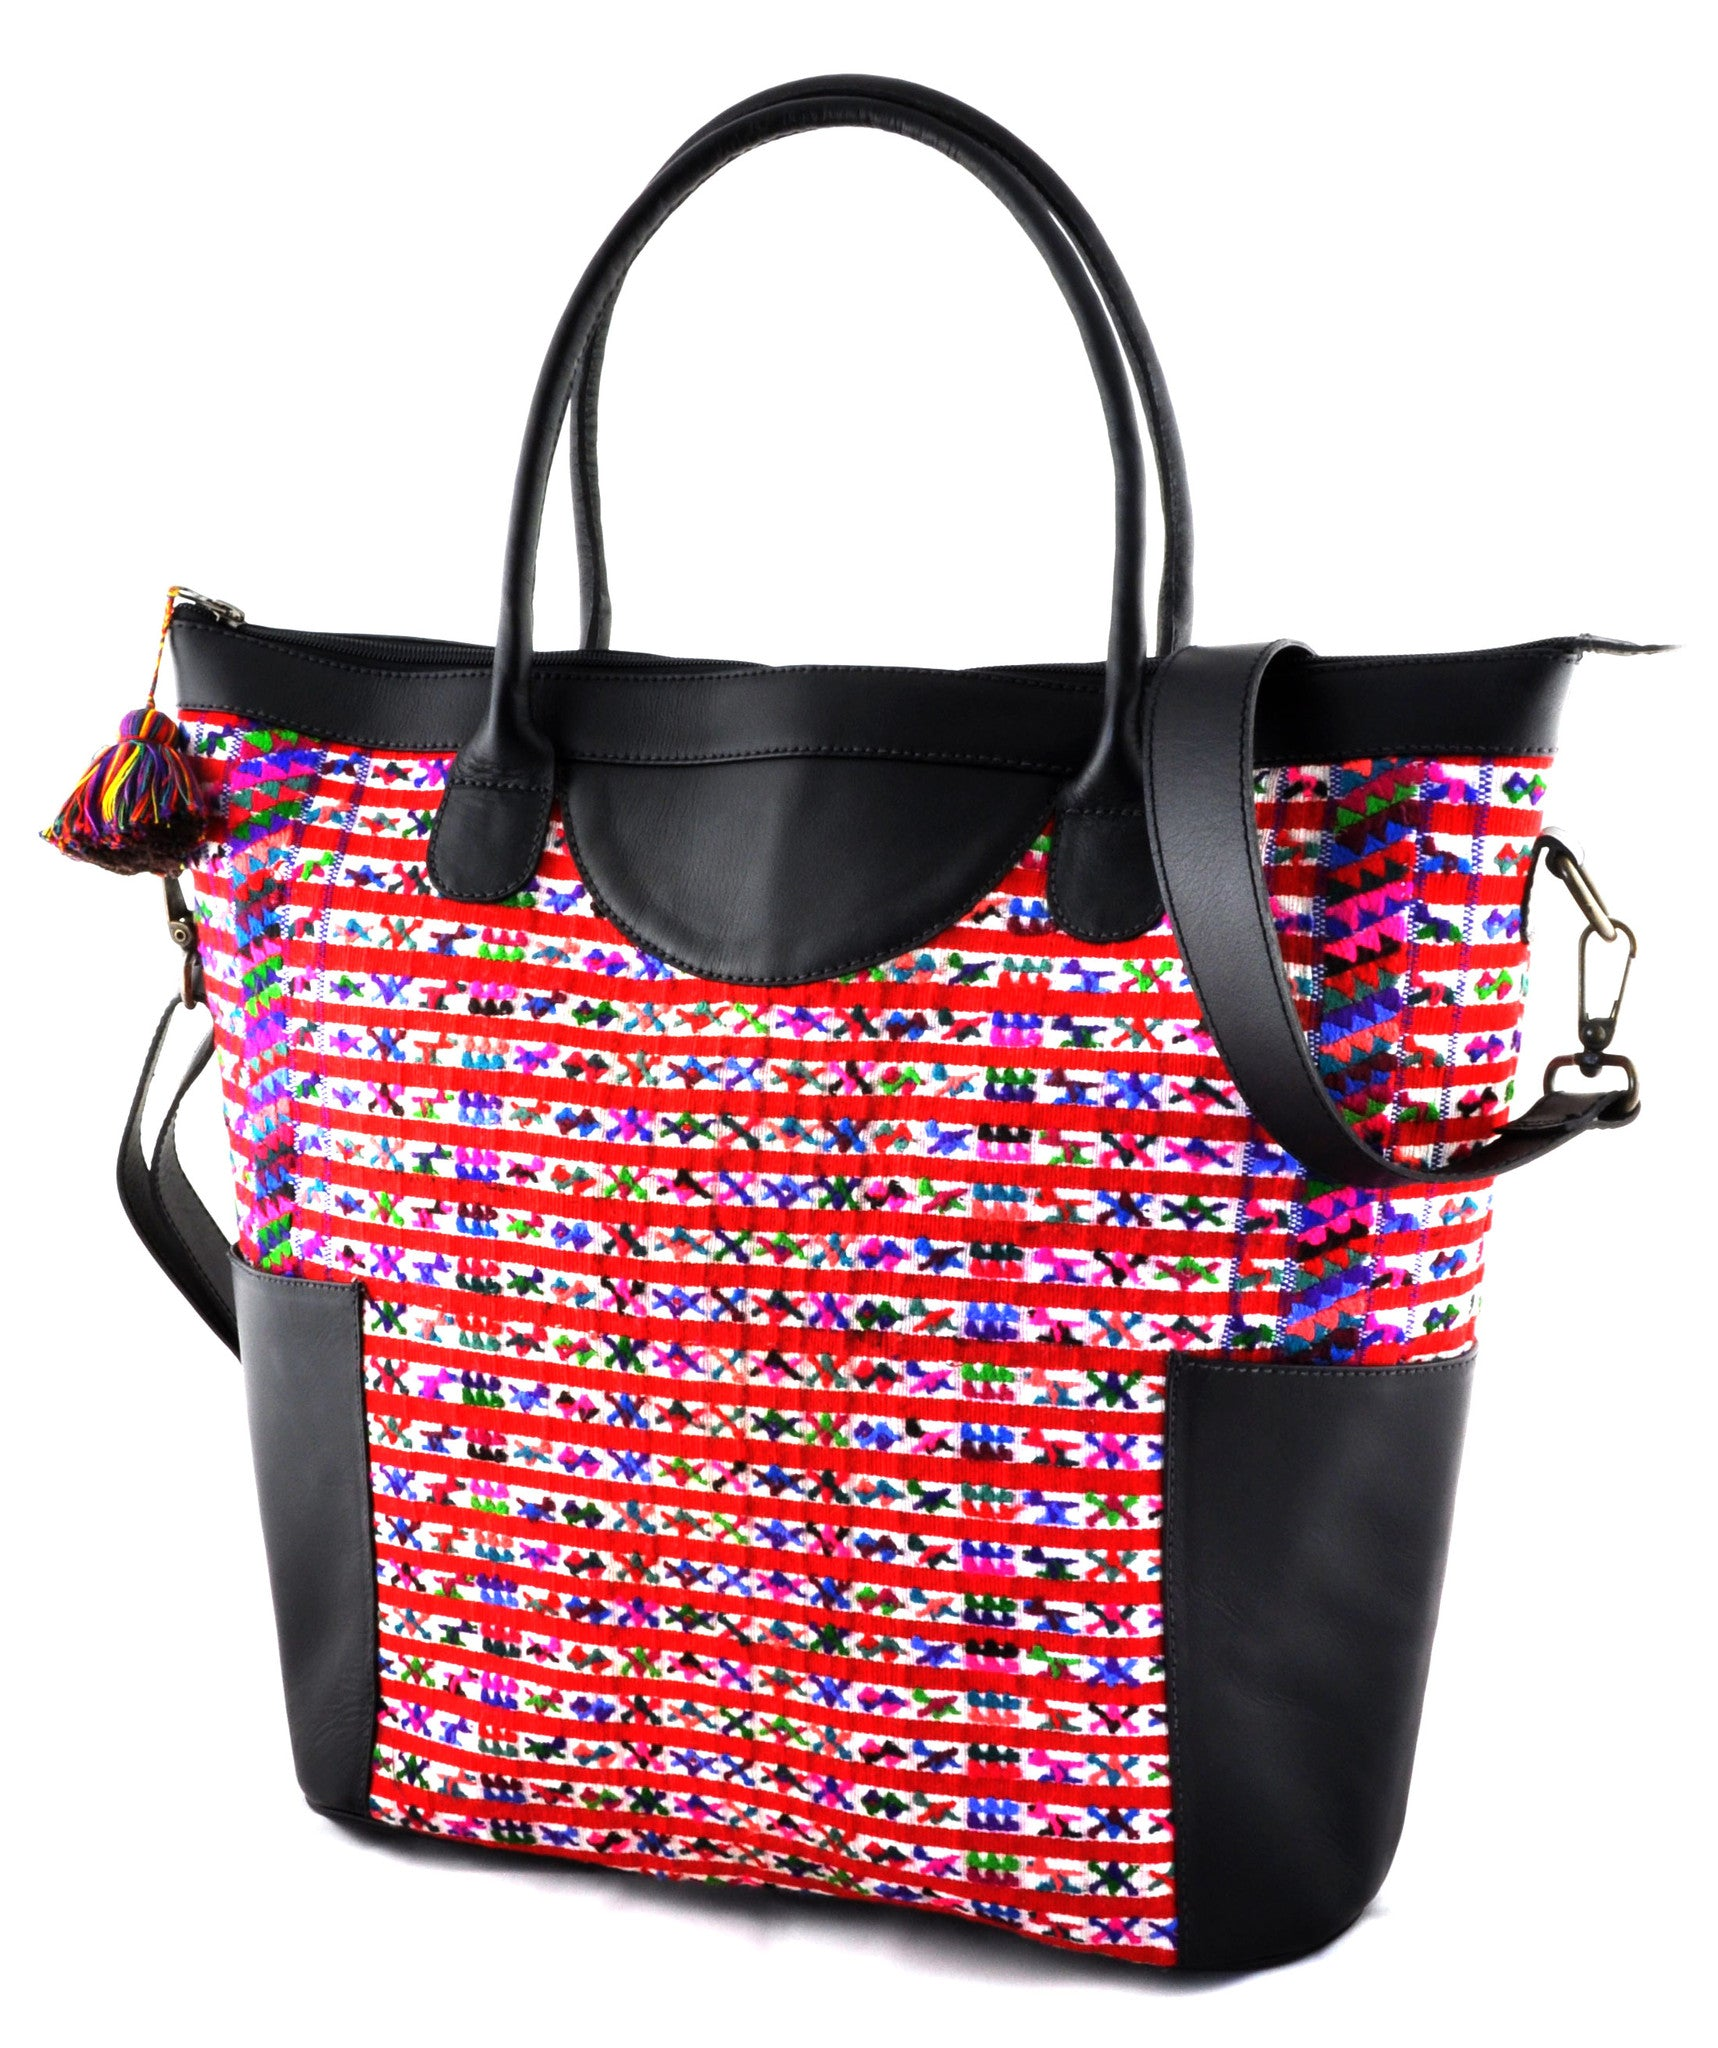 Huipil Weekender Tote - Pink Huipil with Black Leather